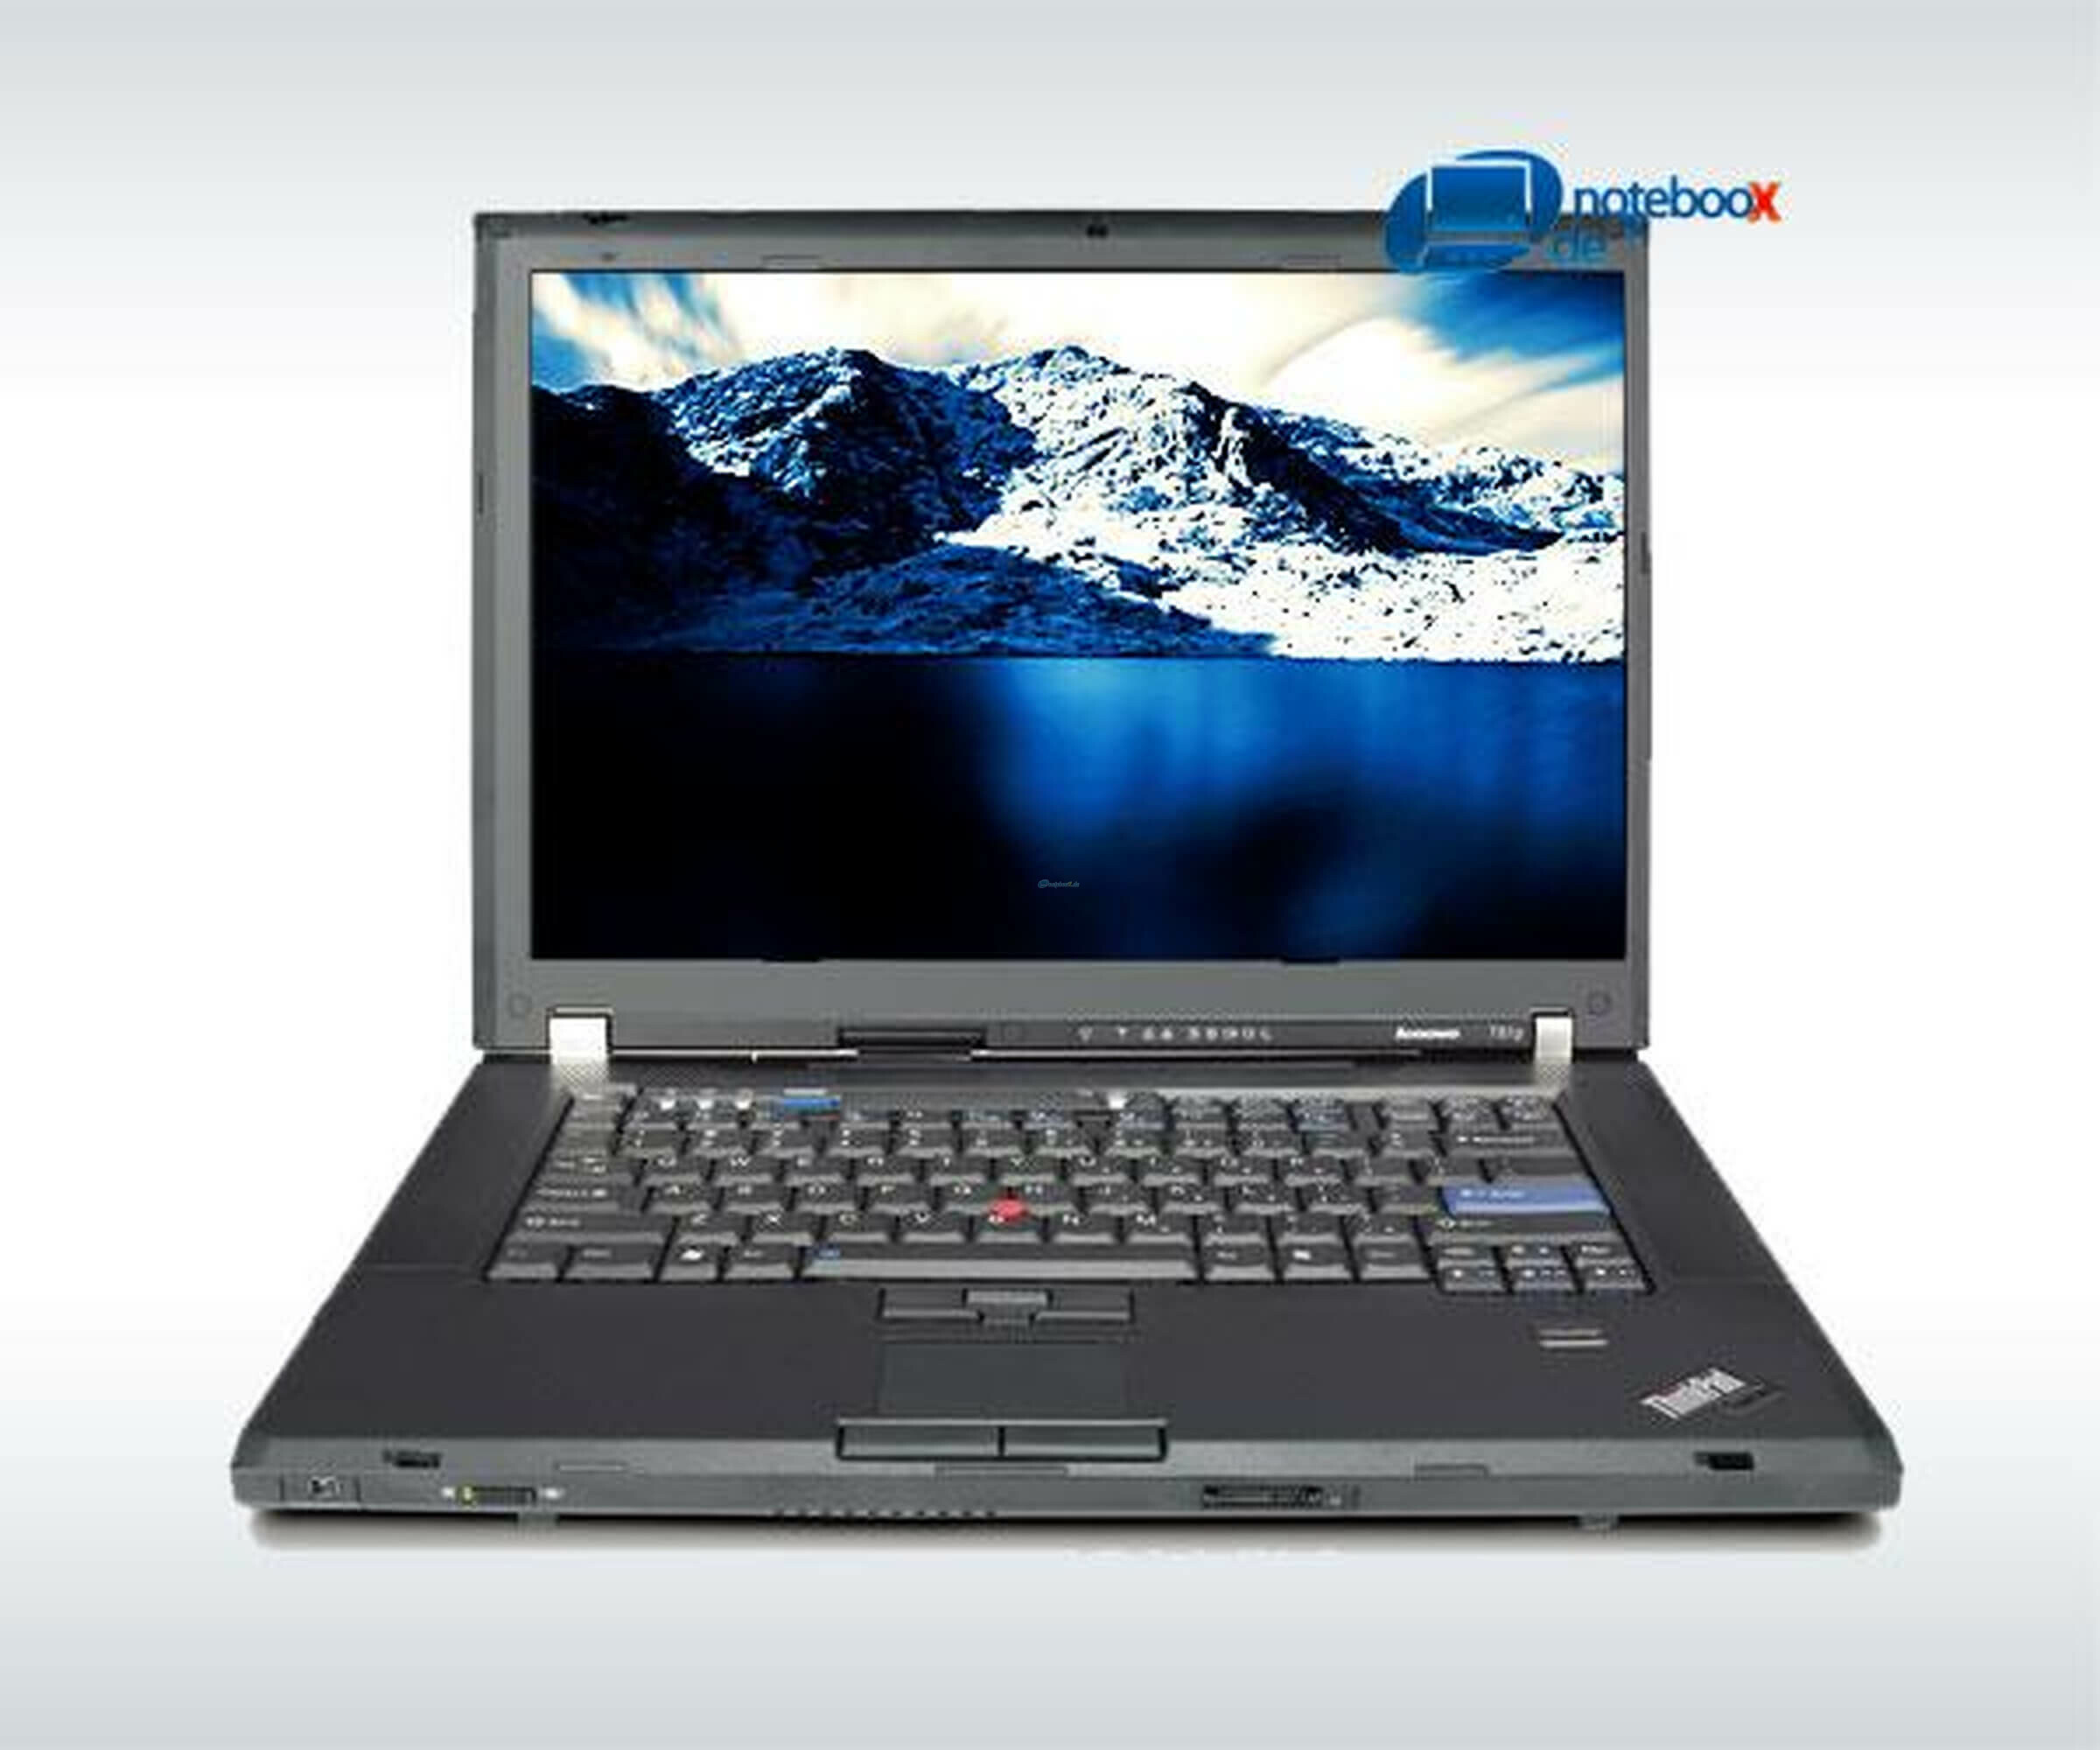 IBM Thinkpad T61P 6458-V5C T7300 2,0GHz 2GB 160GB DVDRW Quadro FX 570M